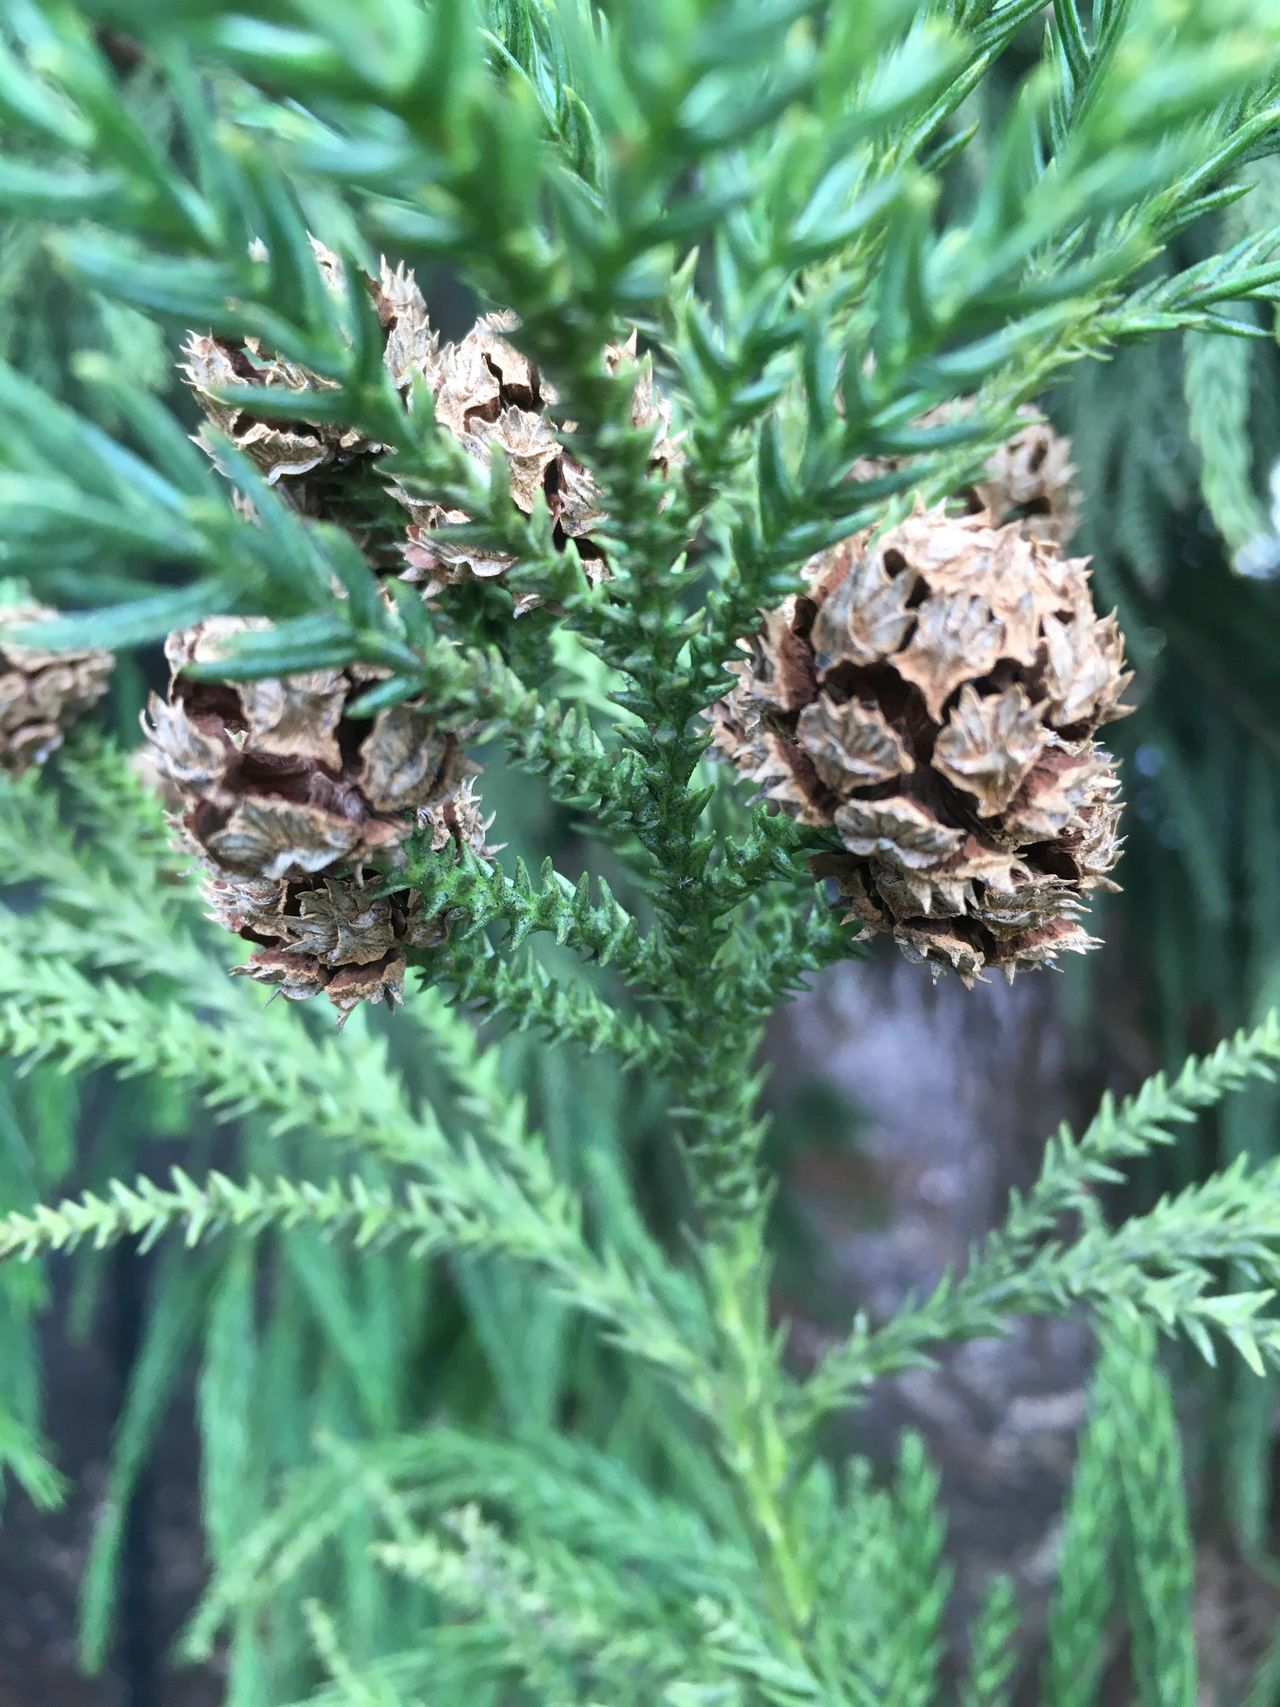 Greenery and cones. Growth Green Color Nature Plant Close-up Outdoors No People Leaf Beauty In Nature Flora Coniferous Tree Evergreen Conifer  Close Up Branch Needle Cone Pine Fir